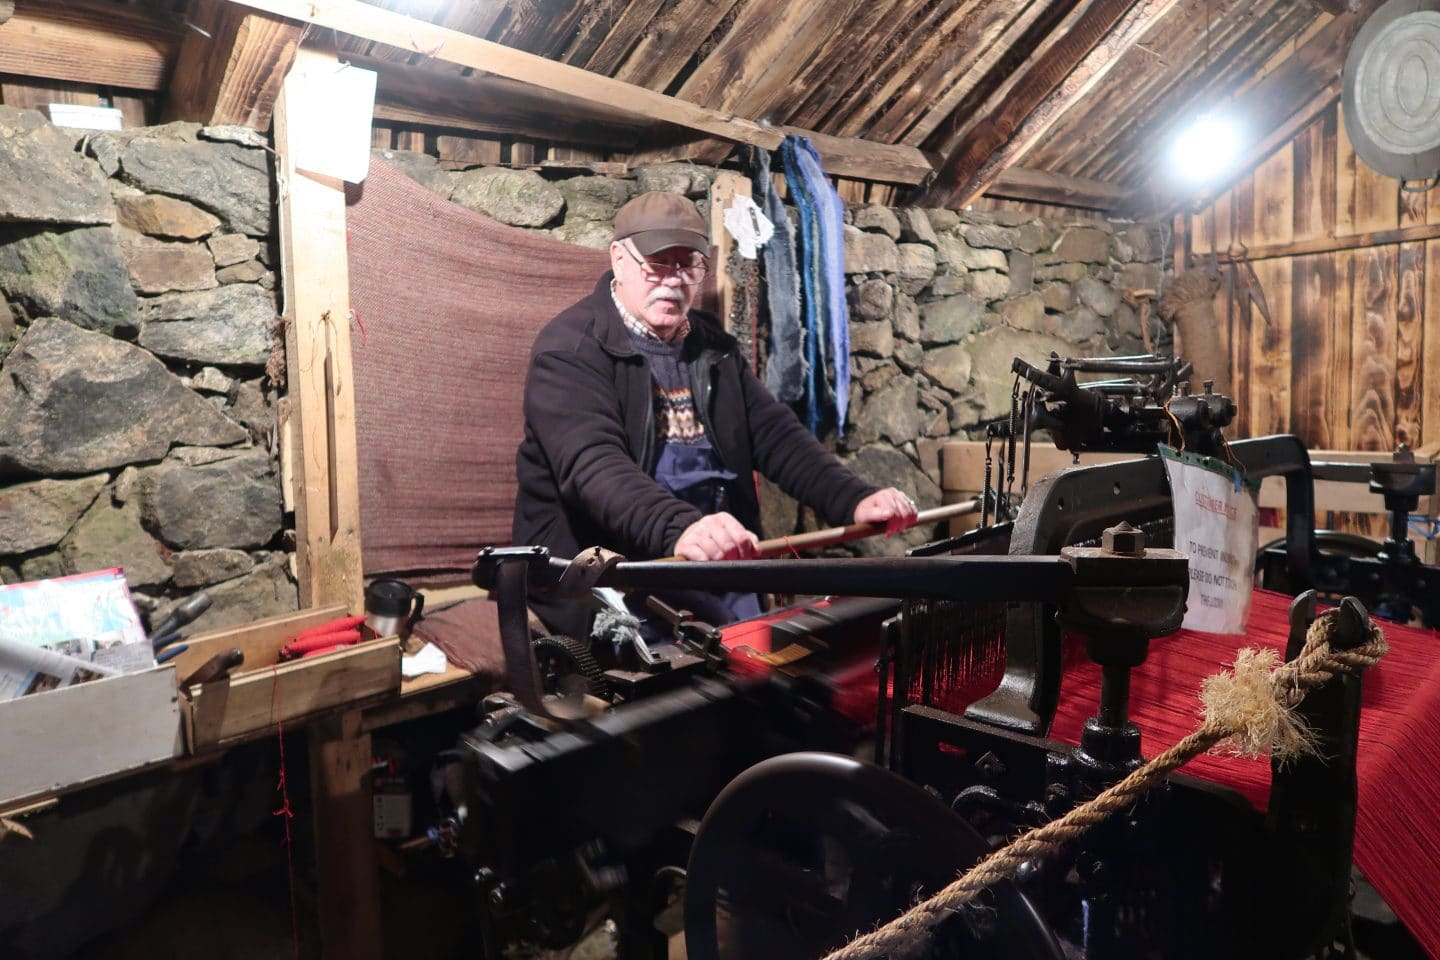 man making Harris tweed at loom